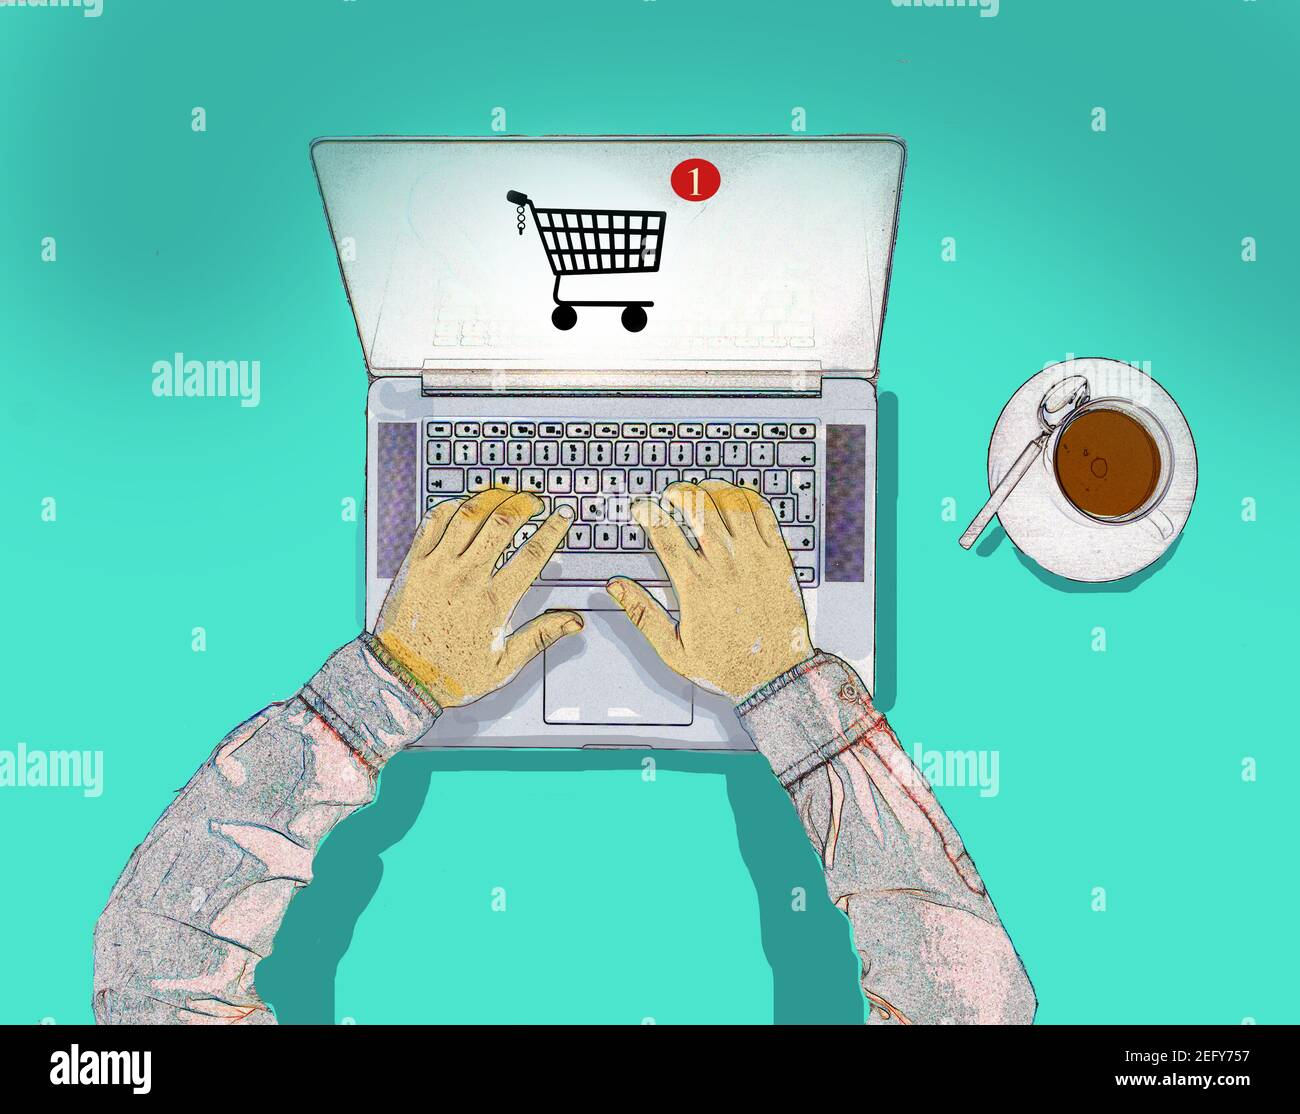 overhead view of hands on a laptop keyboard with a shopping trolly icon on the screen Stock Photo